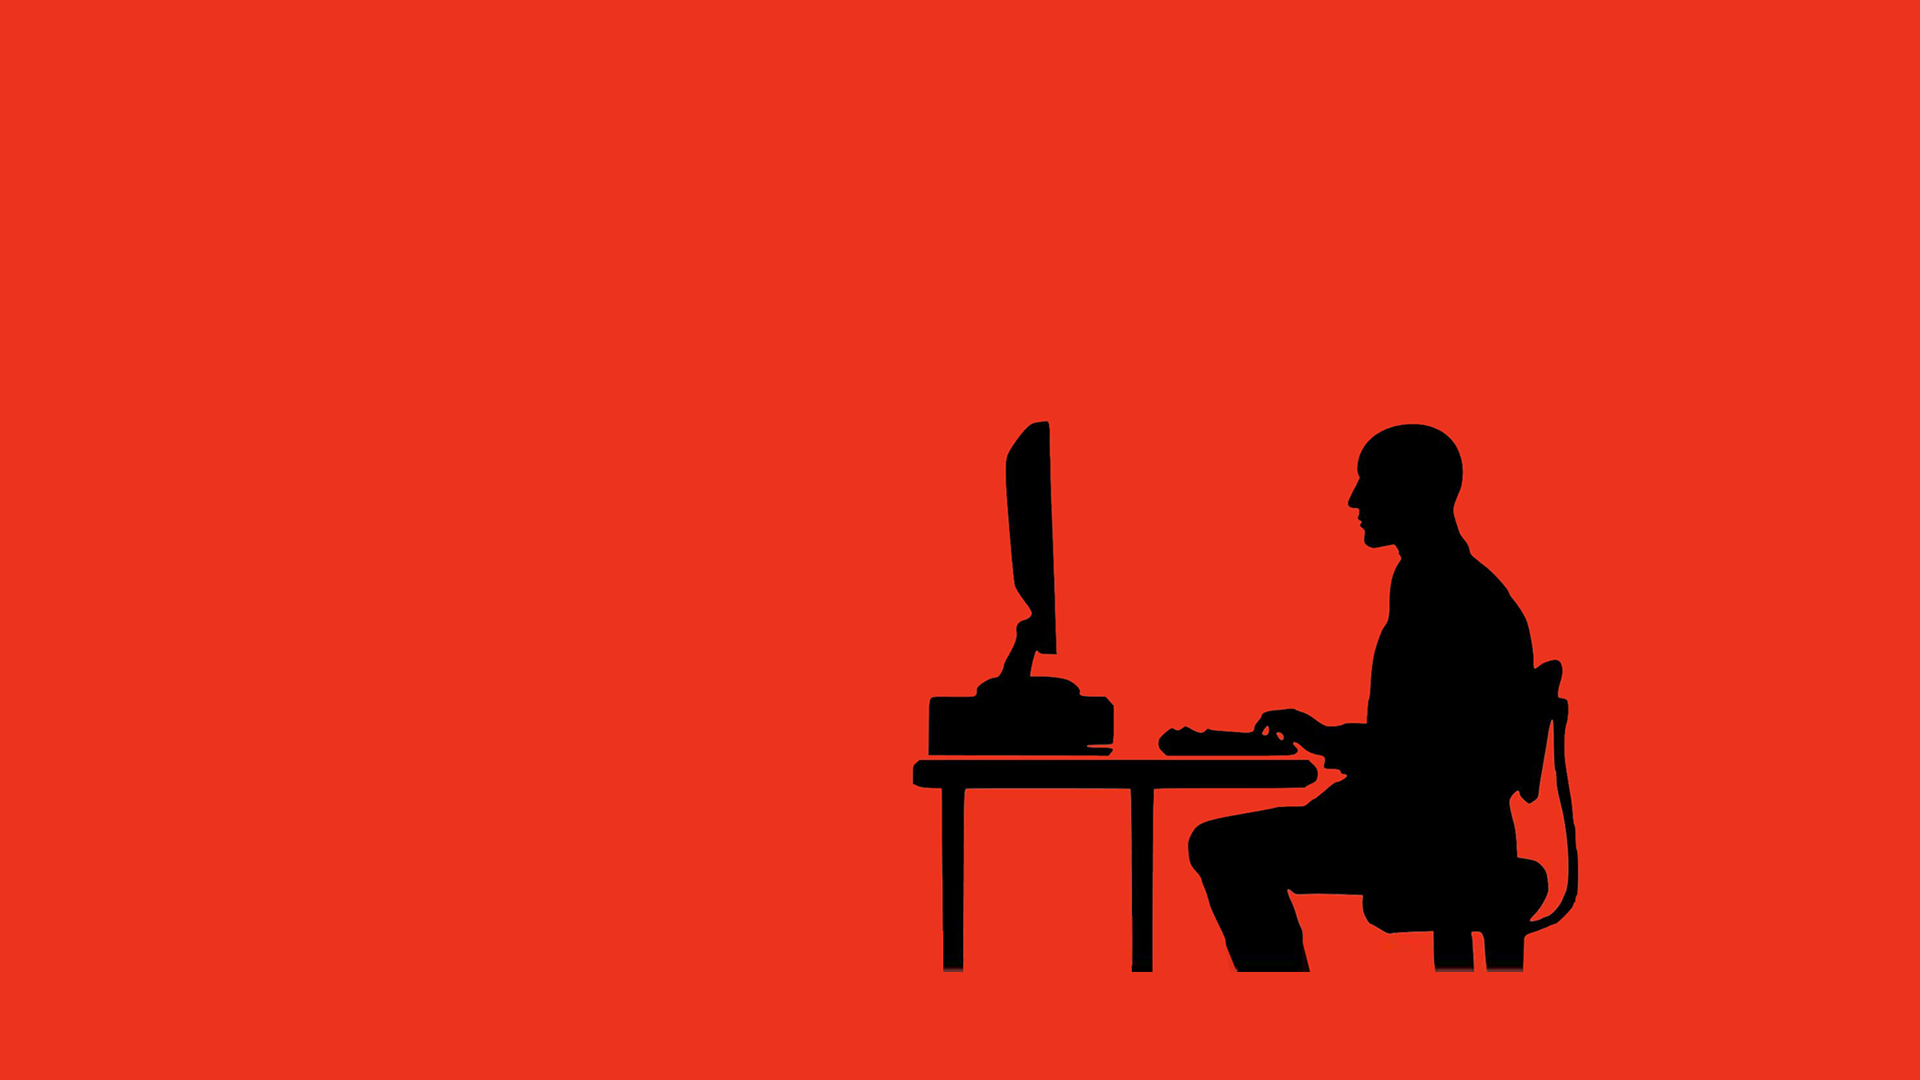 Silhouette of man sitting at computer with red background.